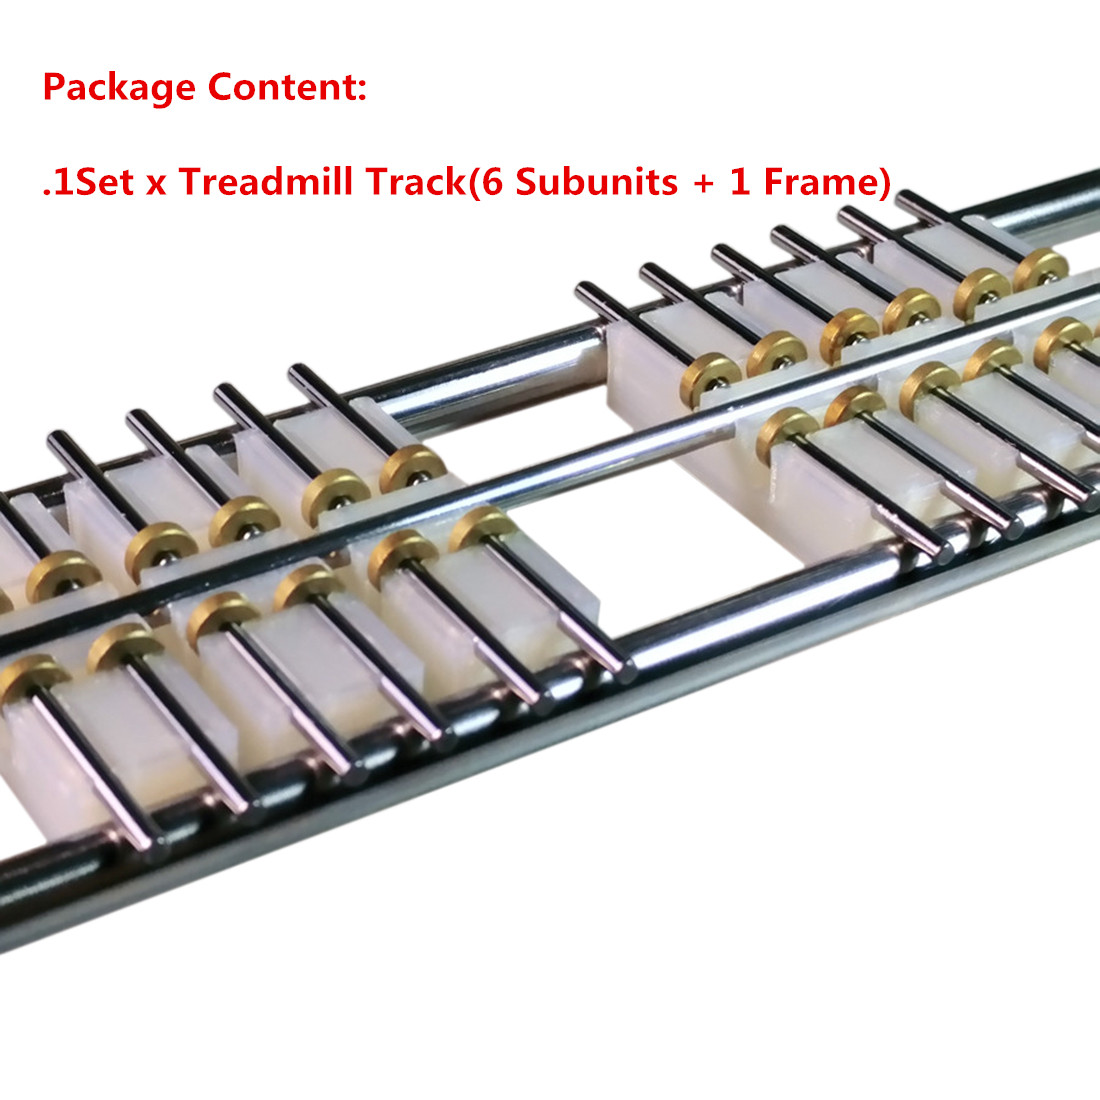 6Pcs 50cm 1:160 Model Train N Scale DIY Accessories Treadmill Track Without Connecting Line For N Scale Model Of Most Brands